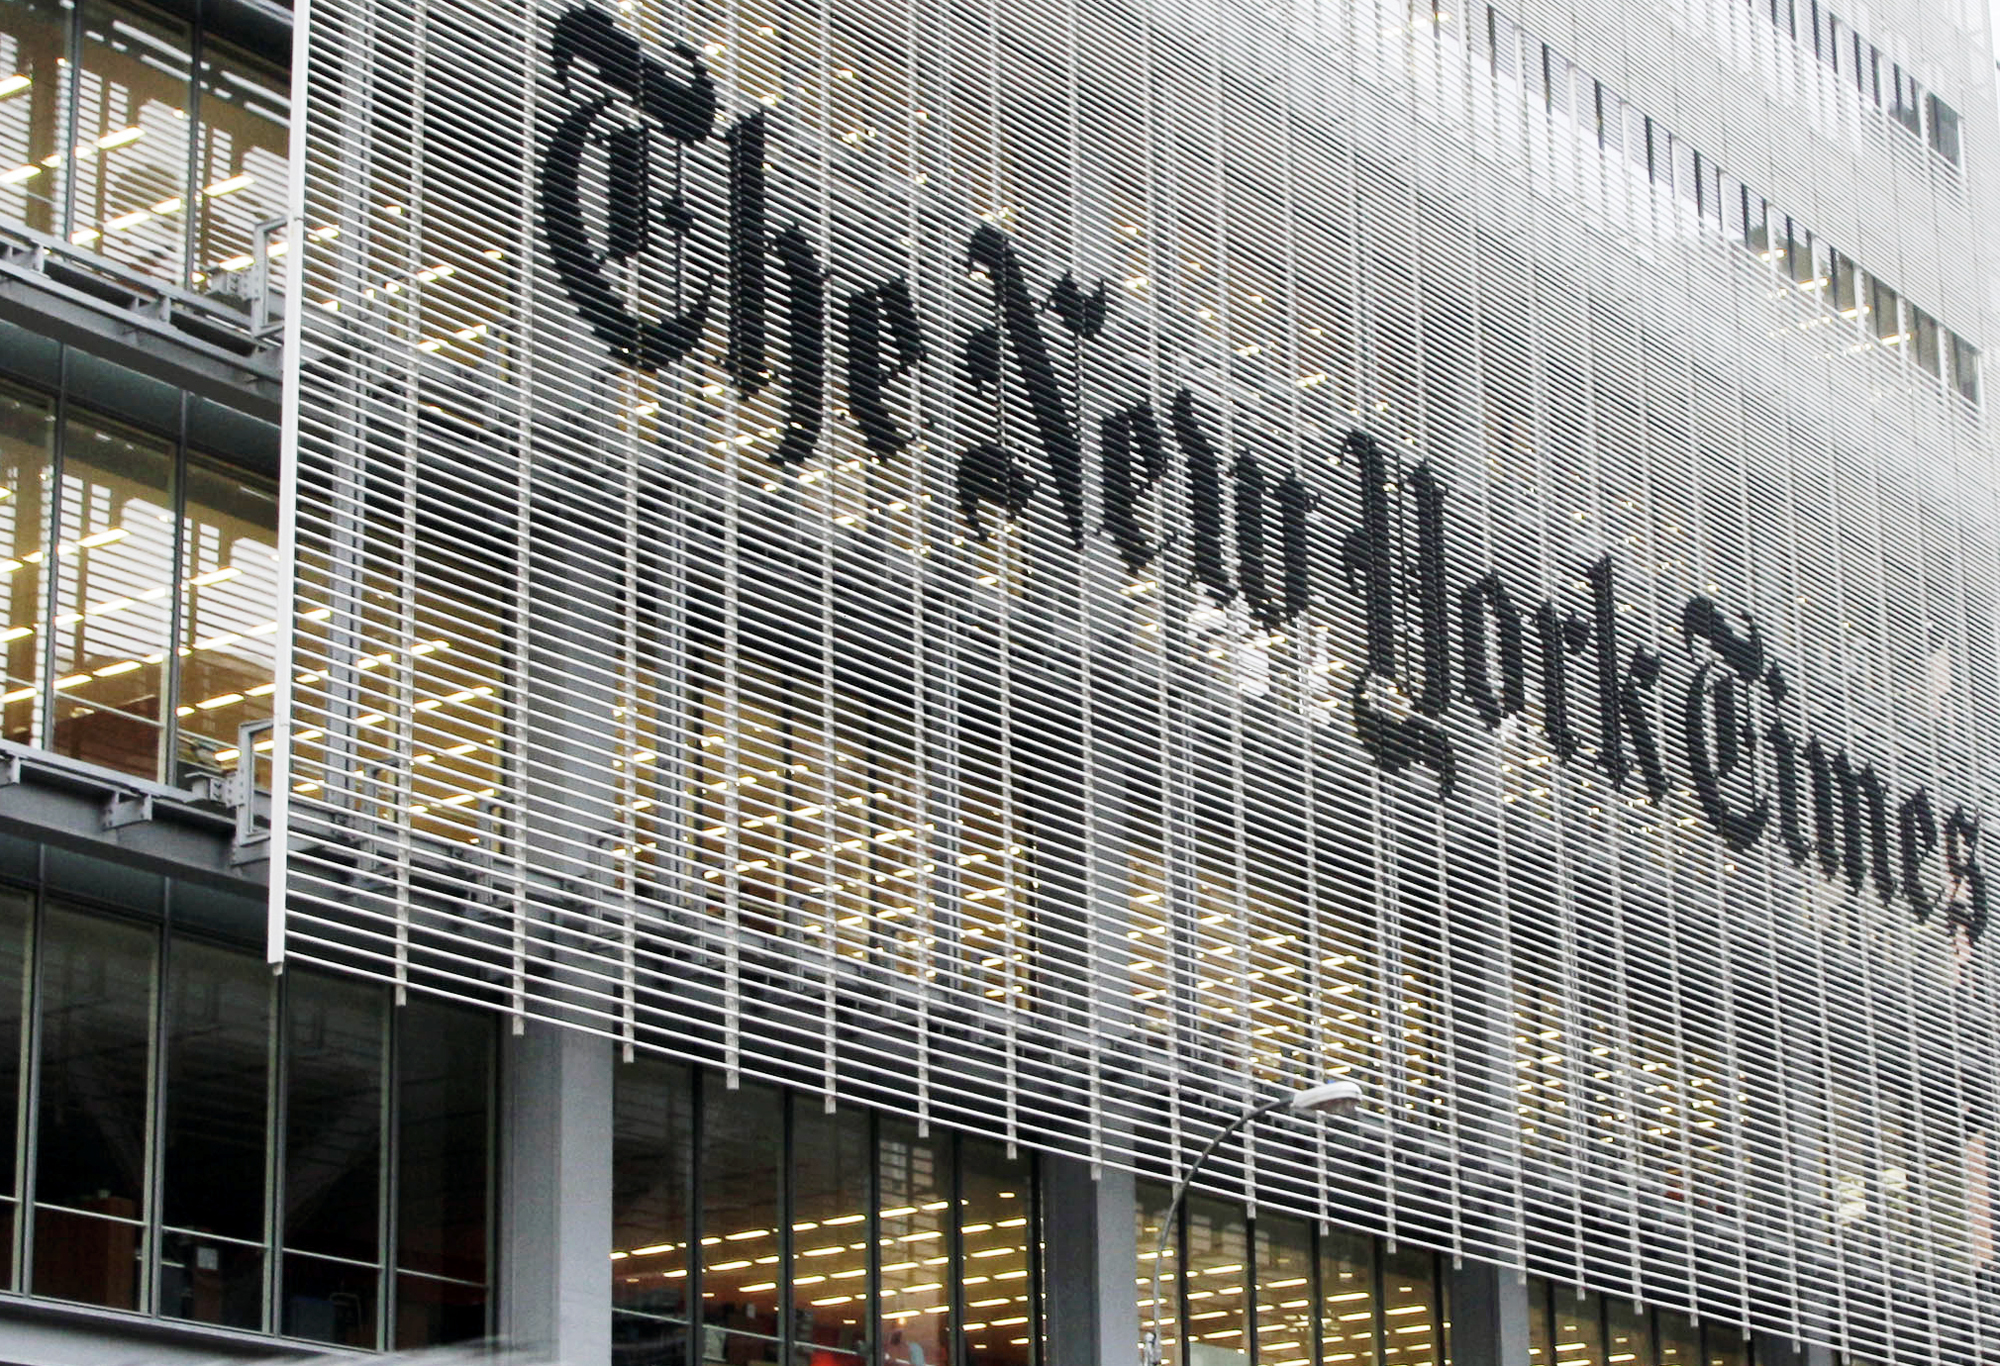 Squirrel Hill native Bari Weiss leaves The New York Times